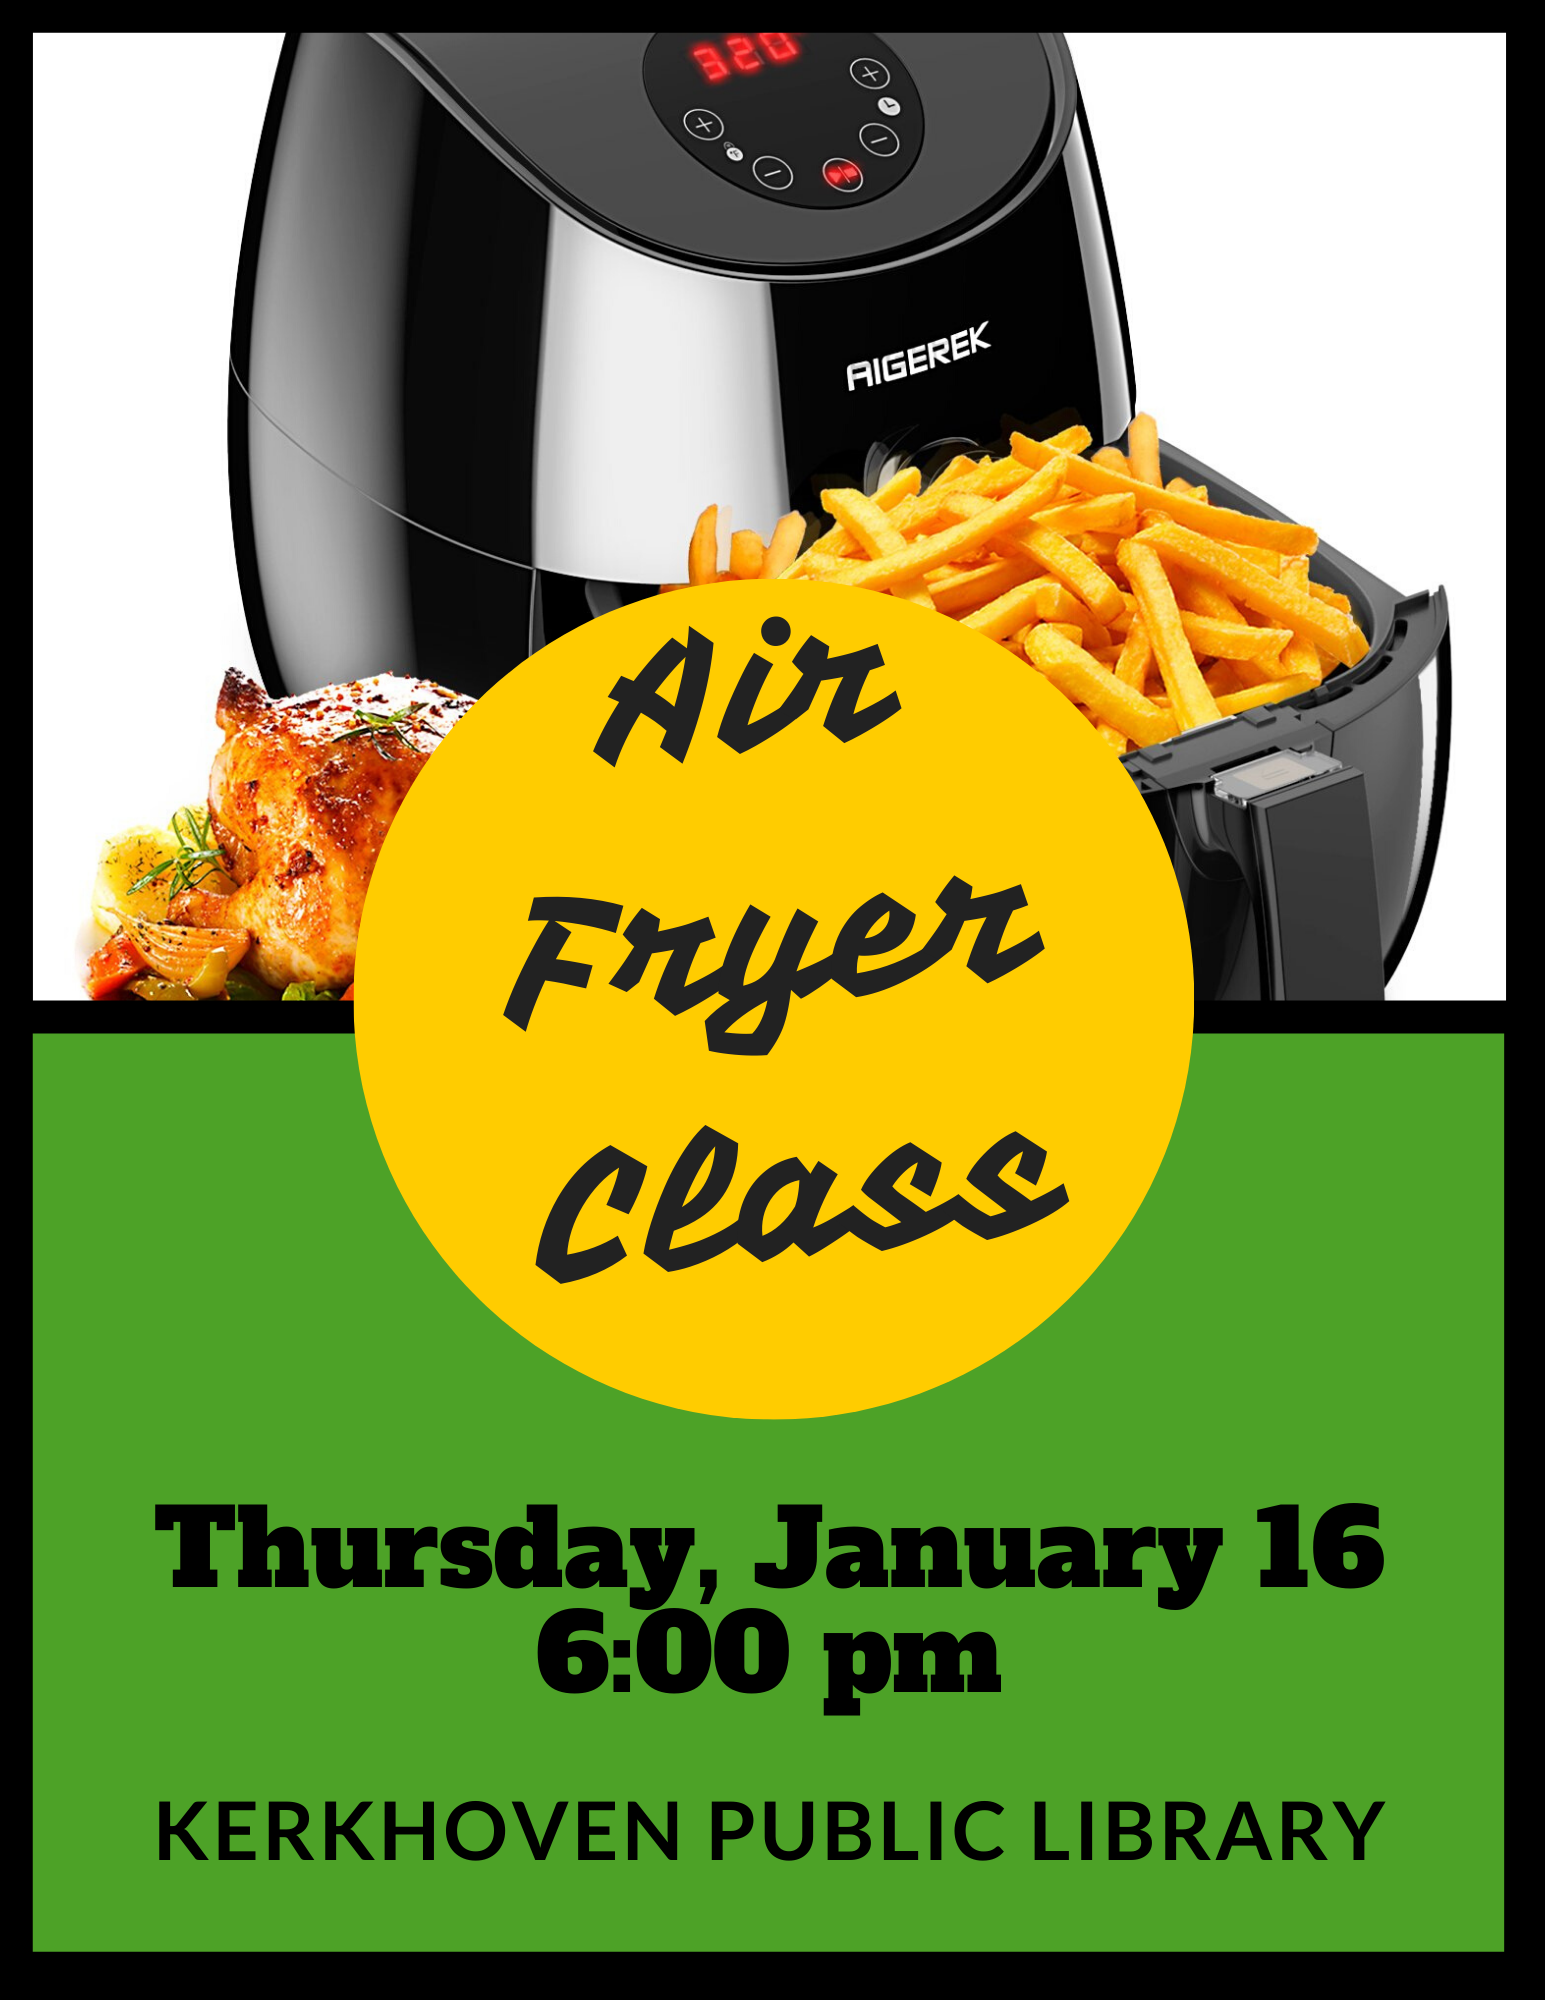 Join us to learn the techniques and tricks of an air fryer. Samples will be served. Thursday, January 16 at 6 pm.